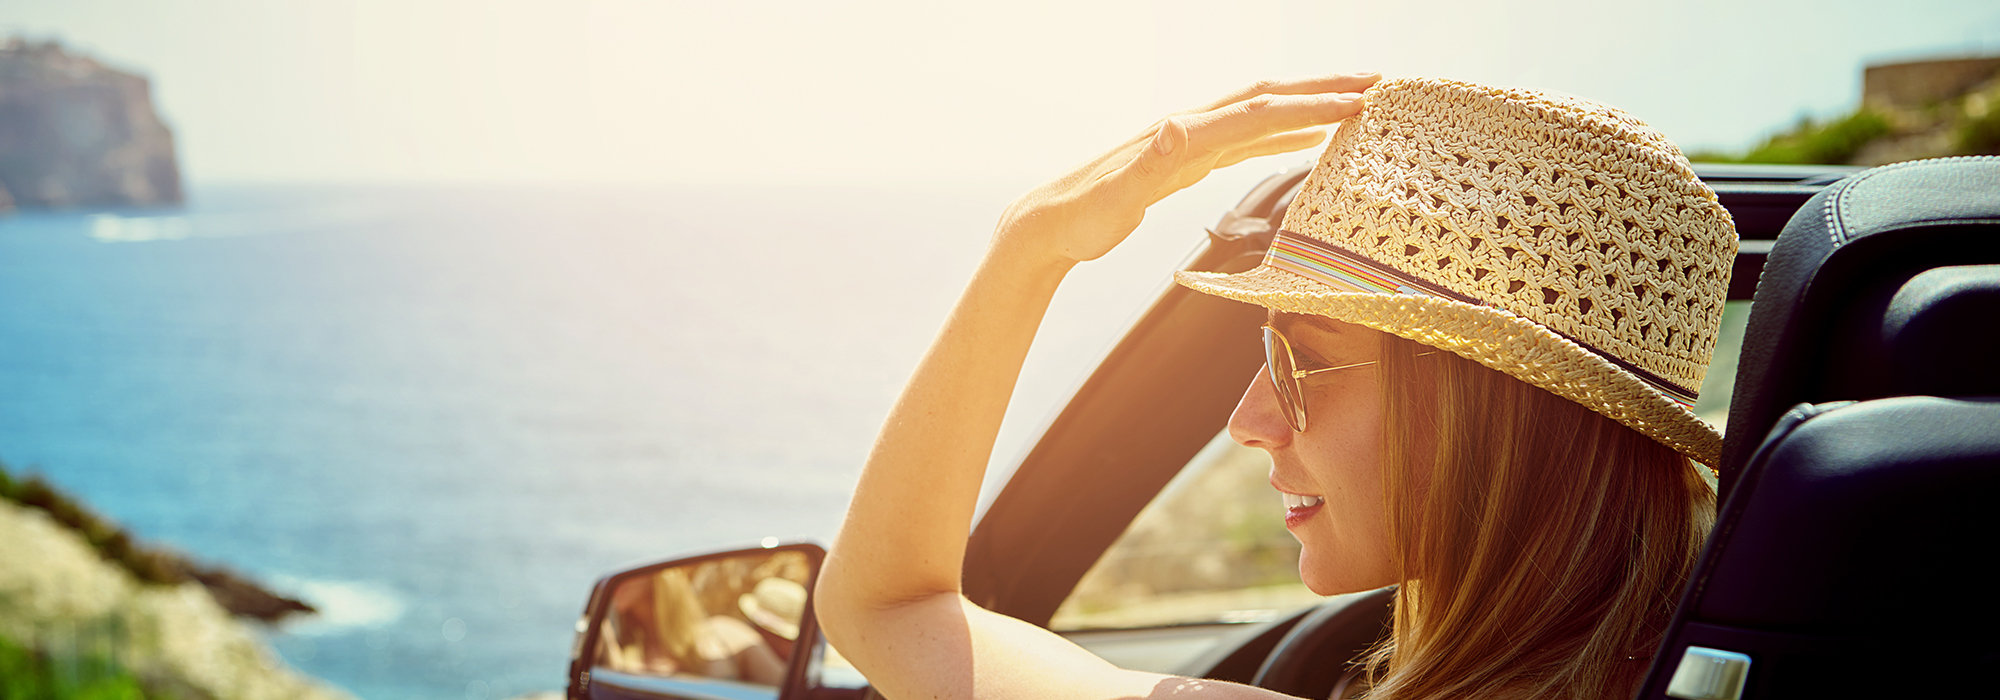 Side view on smiling woman in convertible car